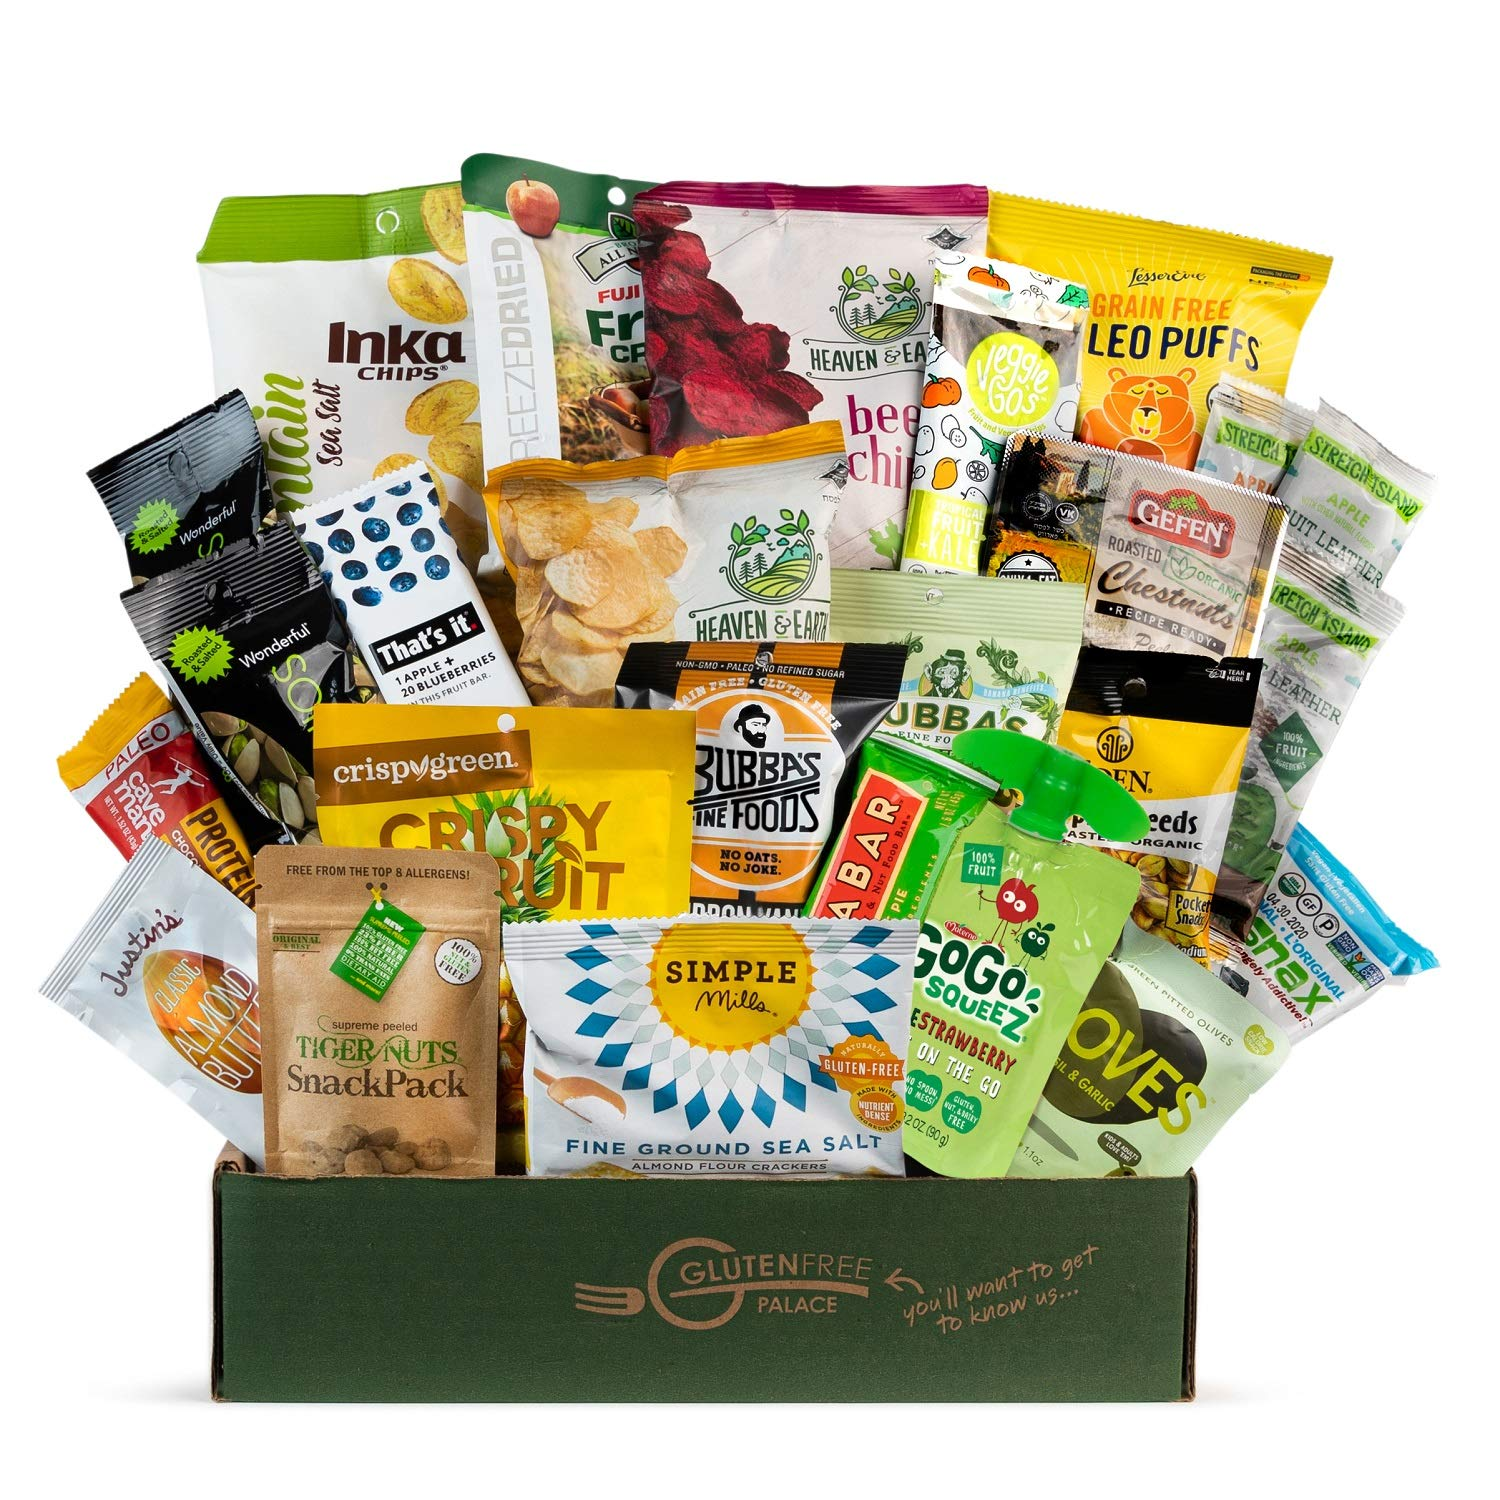 PALEO SNACKS Variety Pack for Adult | Healthy Snack Box [25 Count] EASTER GIFT BASKET GLUTEN FREE | Mix of Whole Foods, Protein Bars, Crackers, Chips, Puffs, Fruit & Nuts by Snack Attack